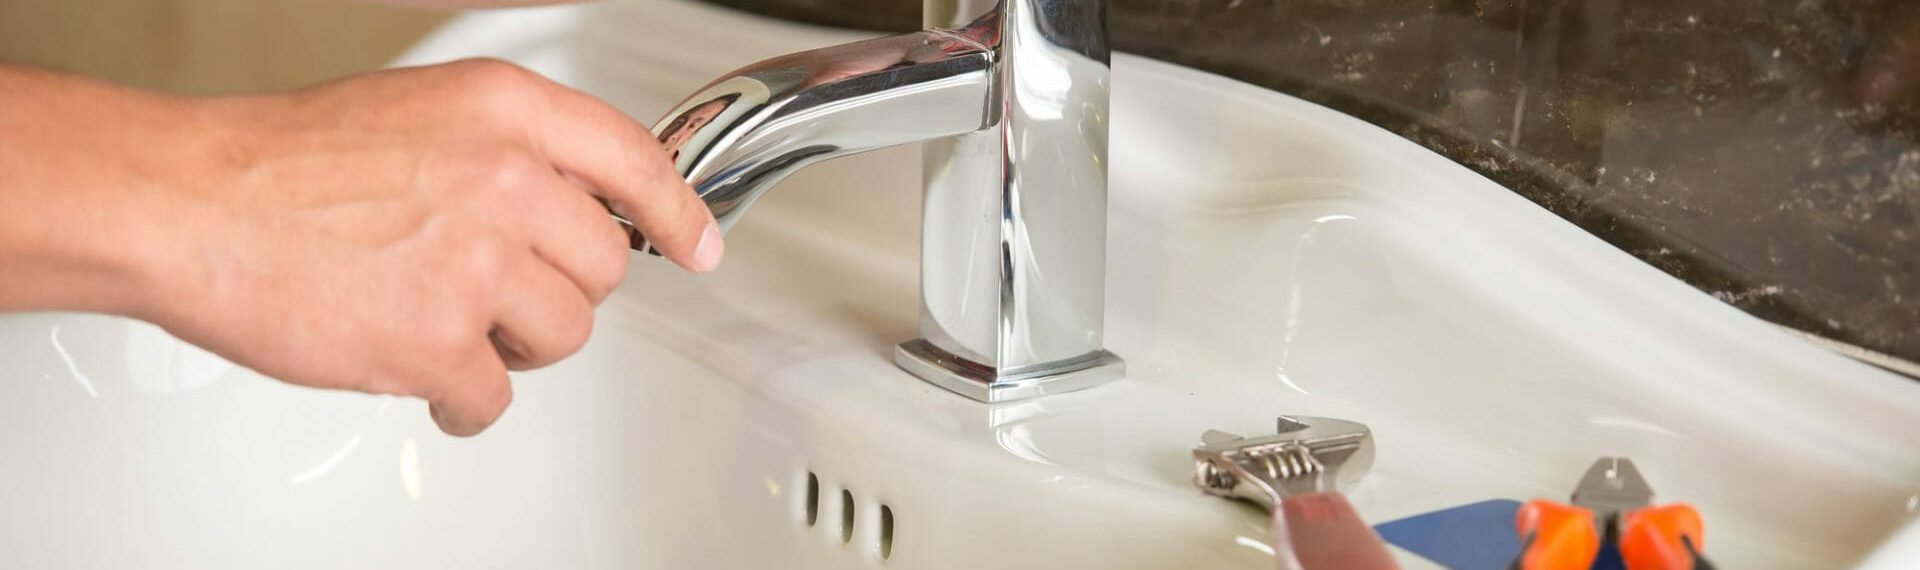 bathroom installer fixing tap on sink